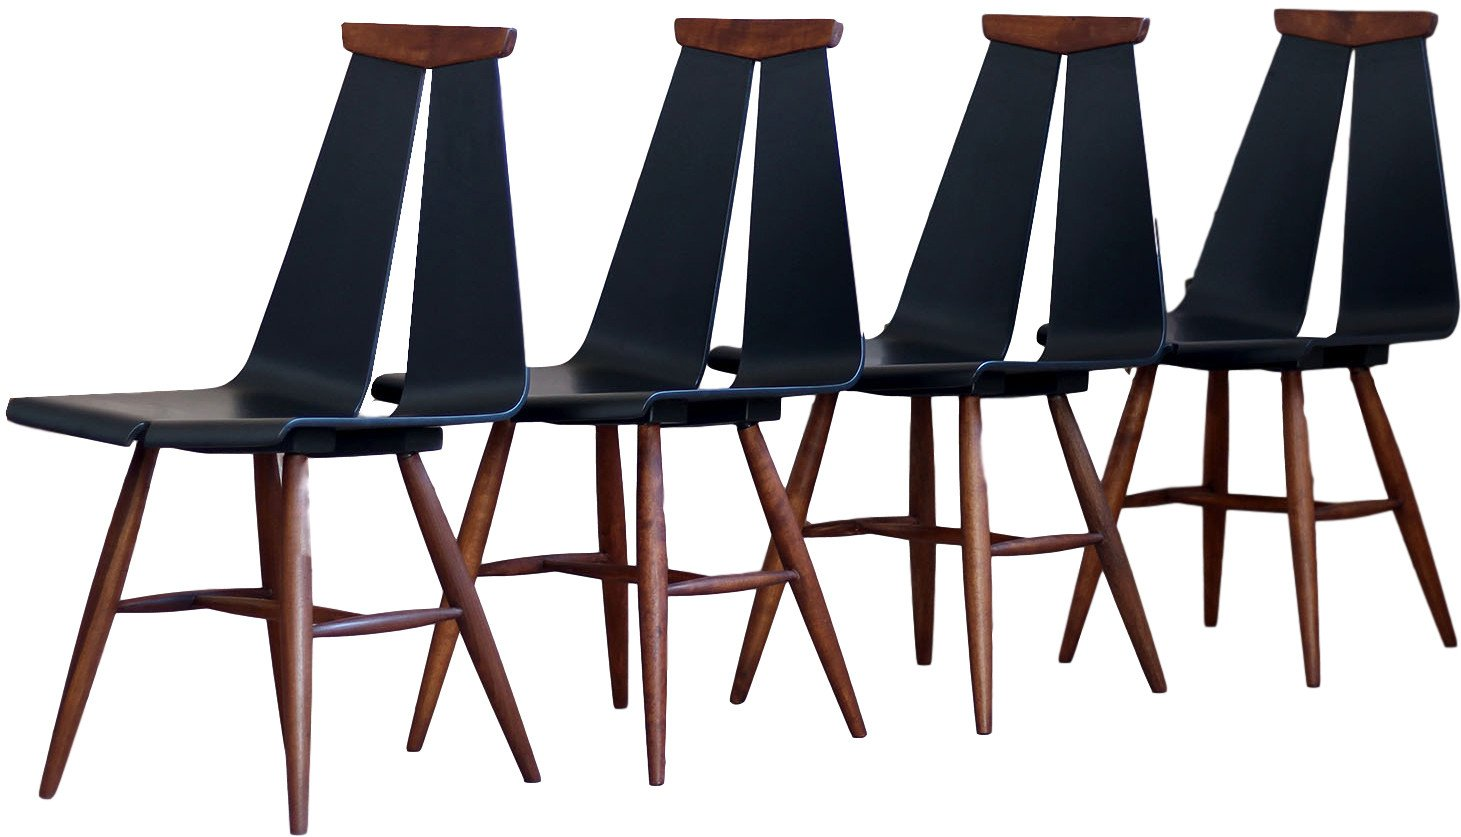 Set of Four Chairs, Finland, 1960s